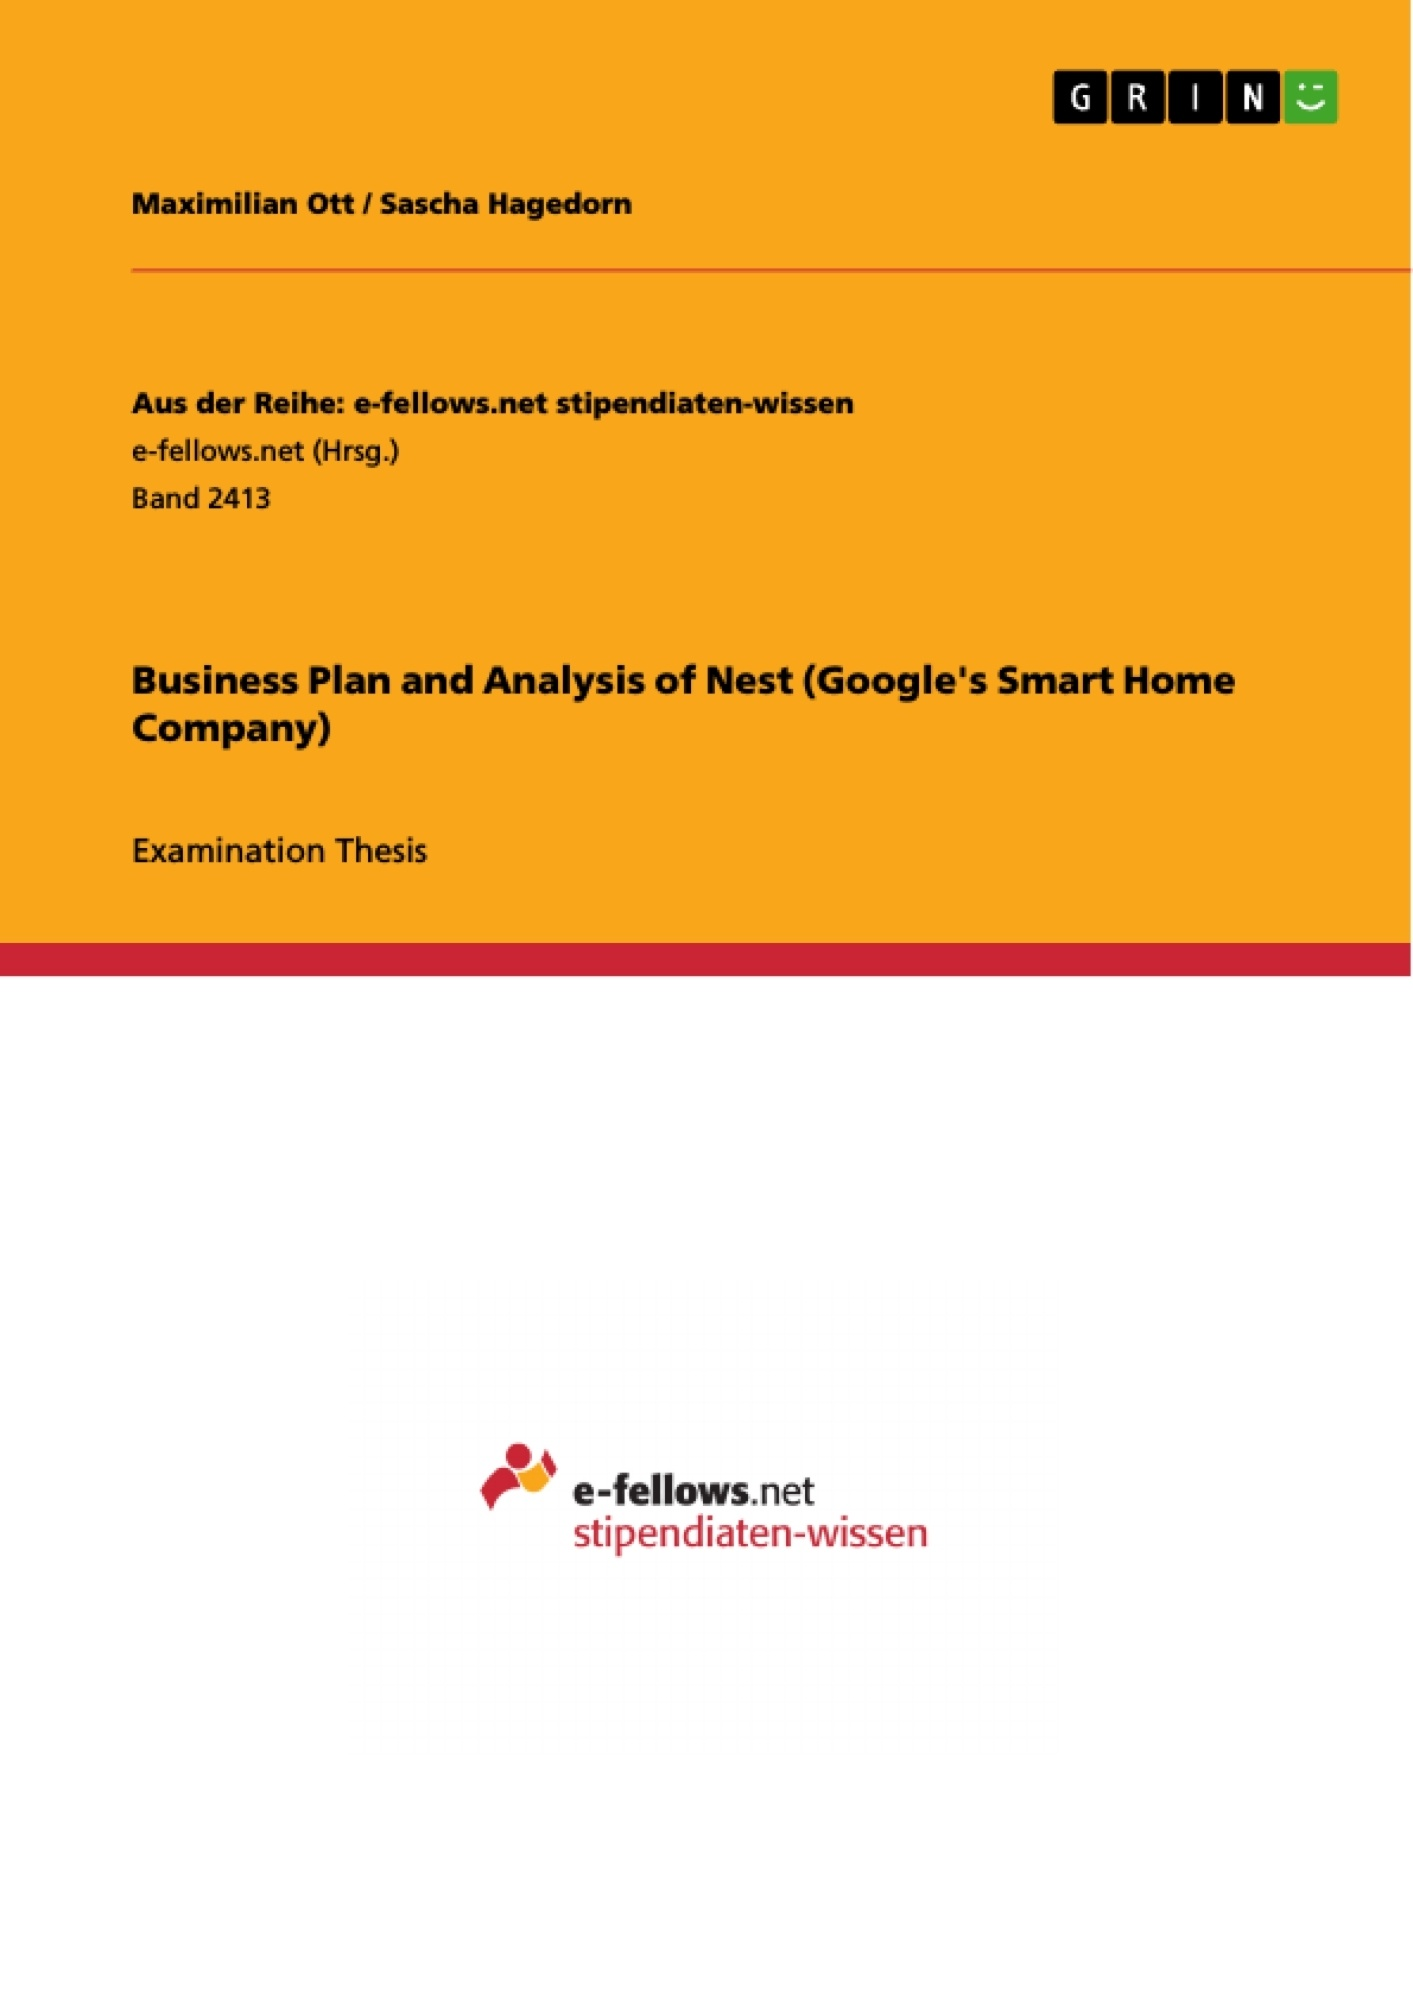 Title: Business Plan and Analysis of Nest (Google's Smart Home Company)